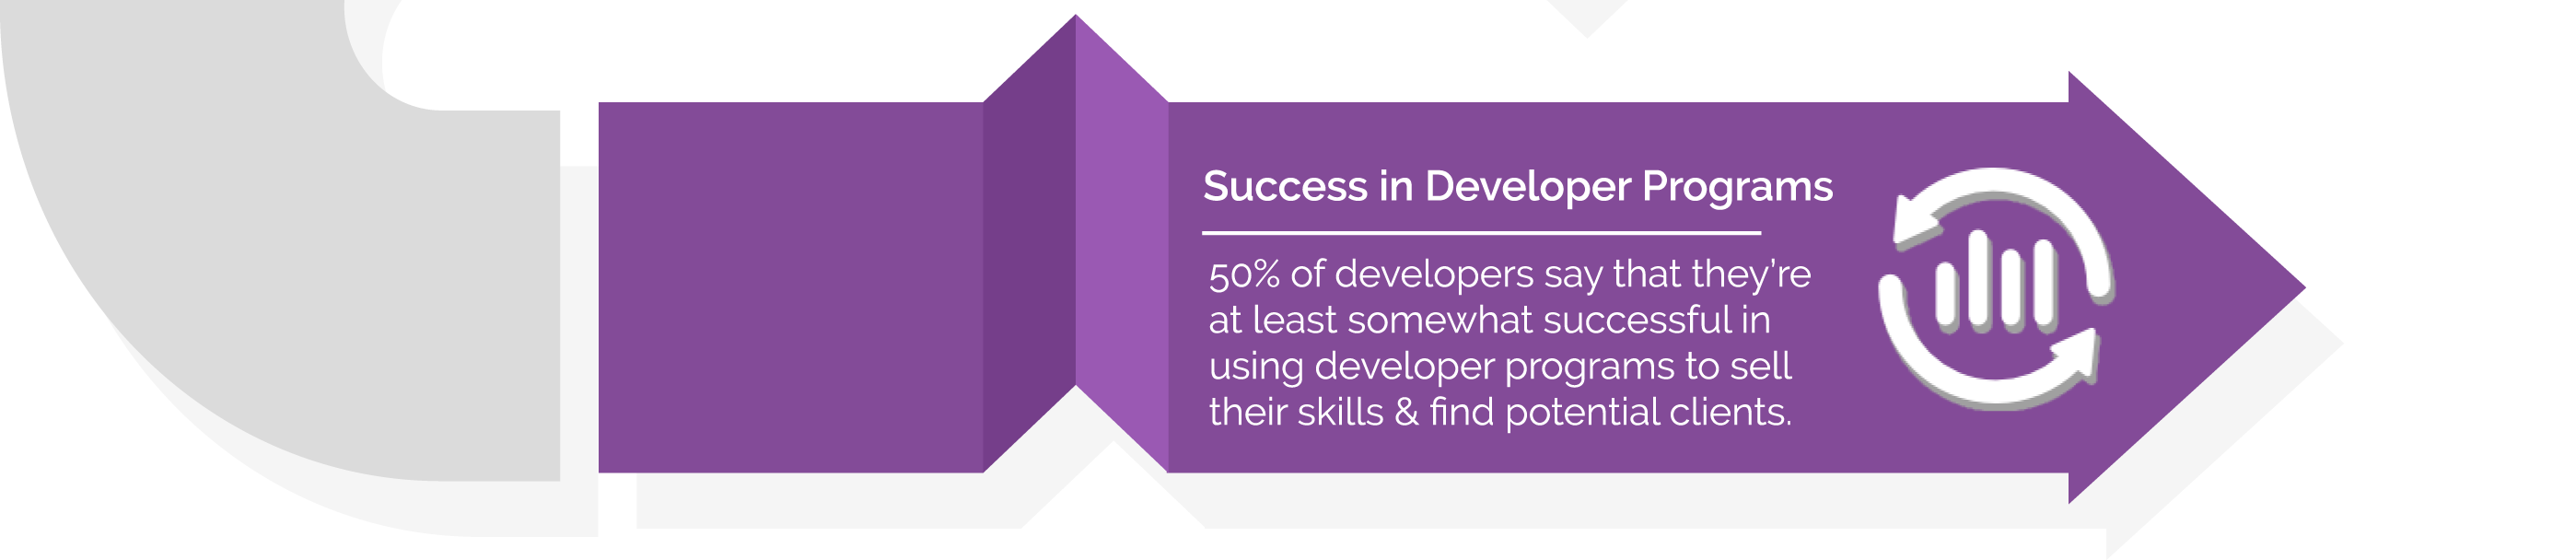 50% of all developers say they are at least somewhat successful in using developer programs to sell their skills & find potential clients.